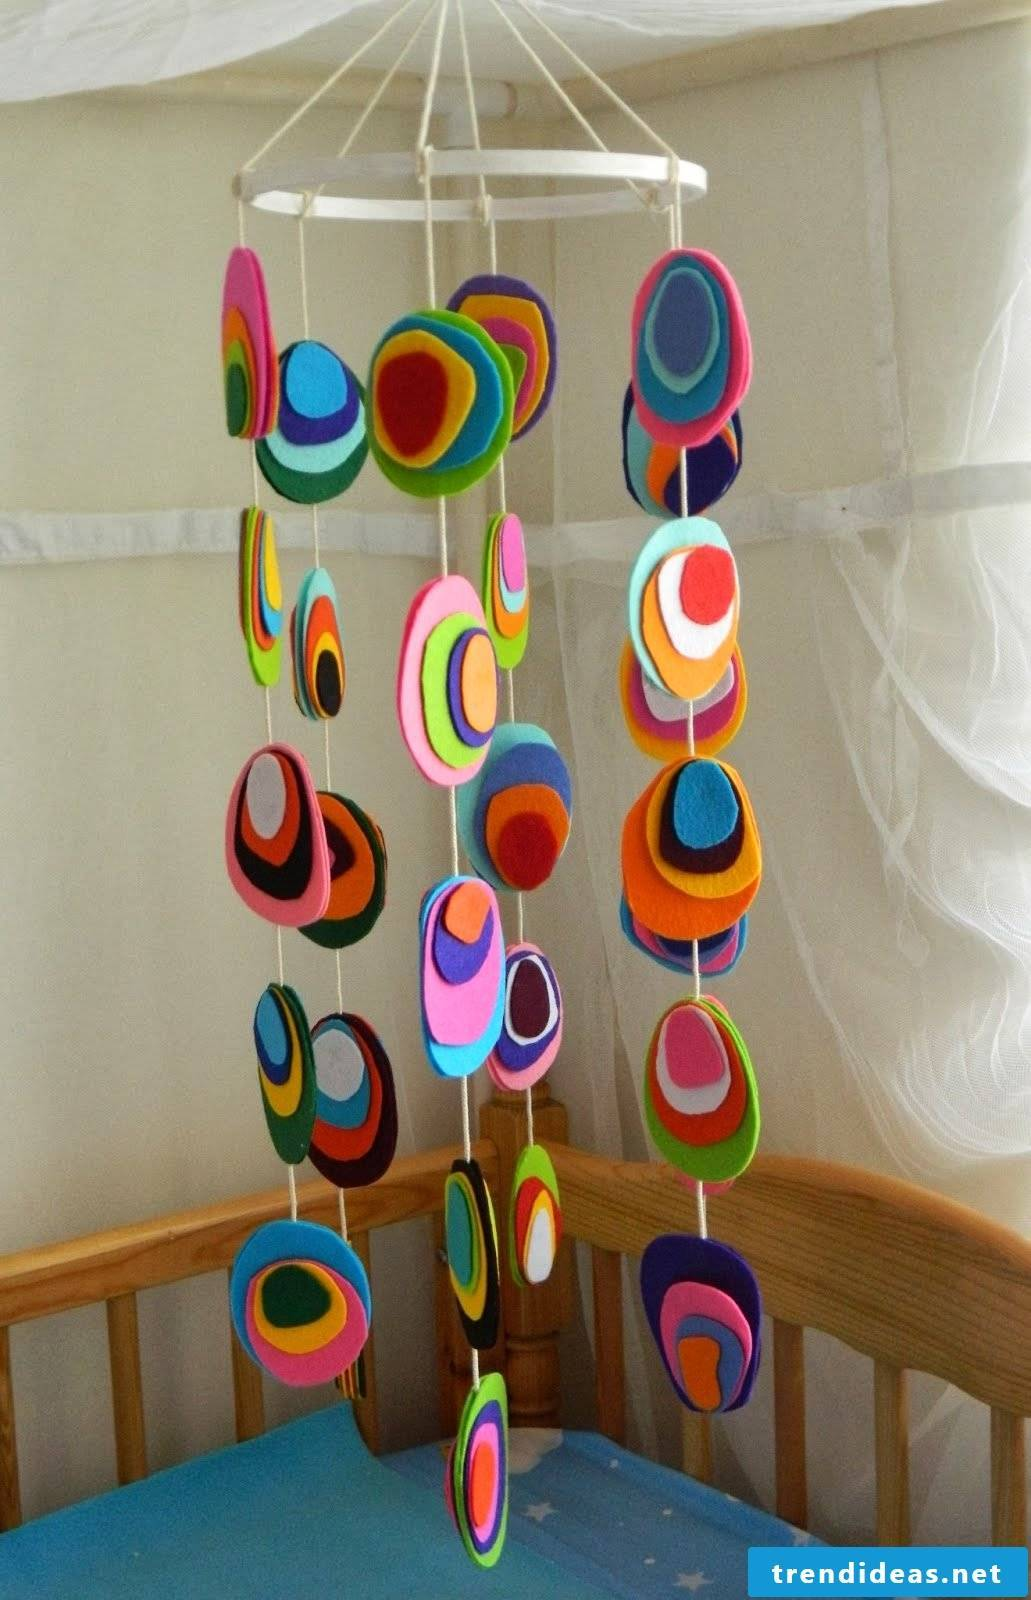 Colorful mobile made of felt